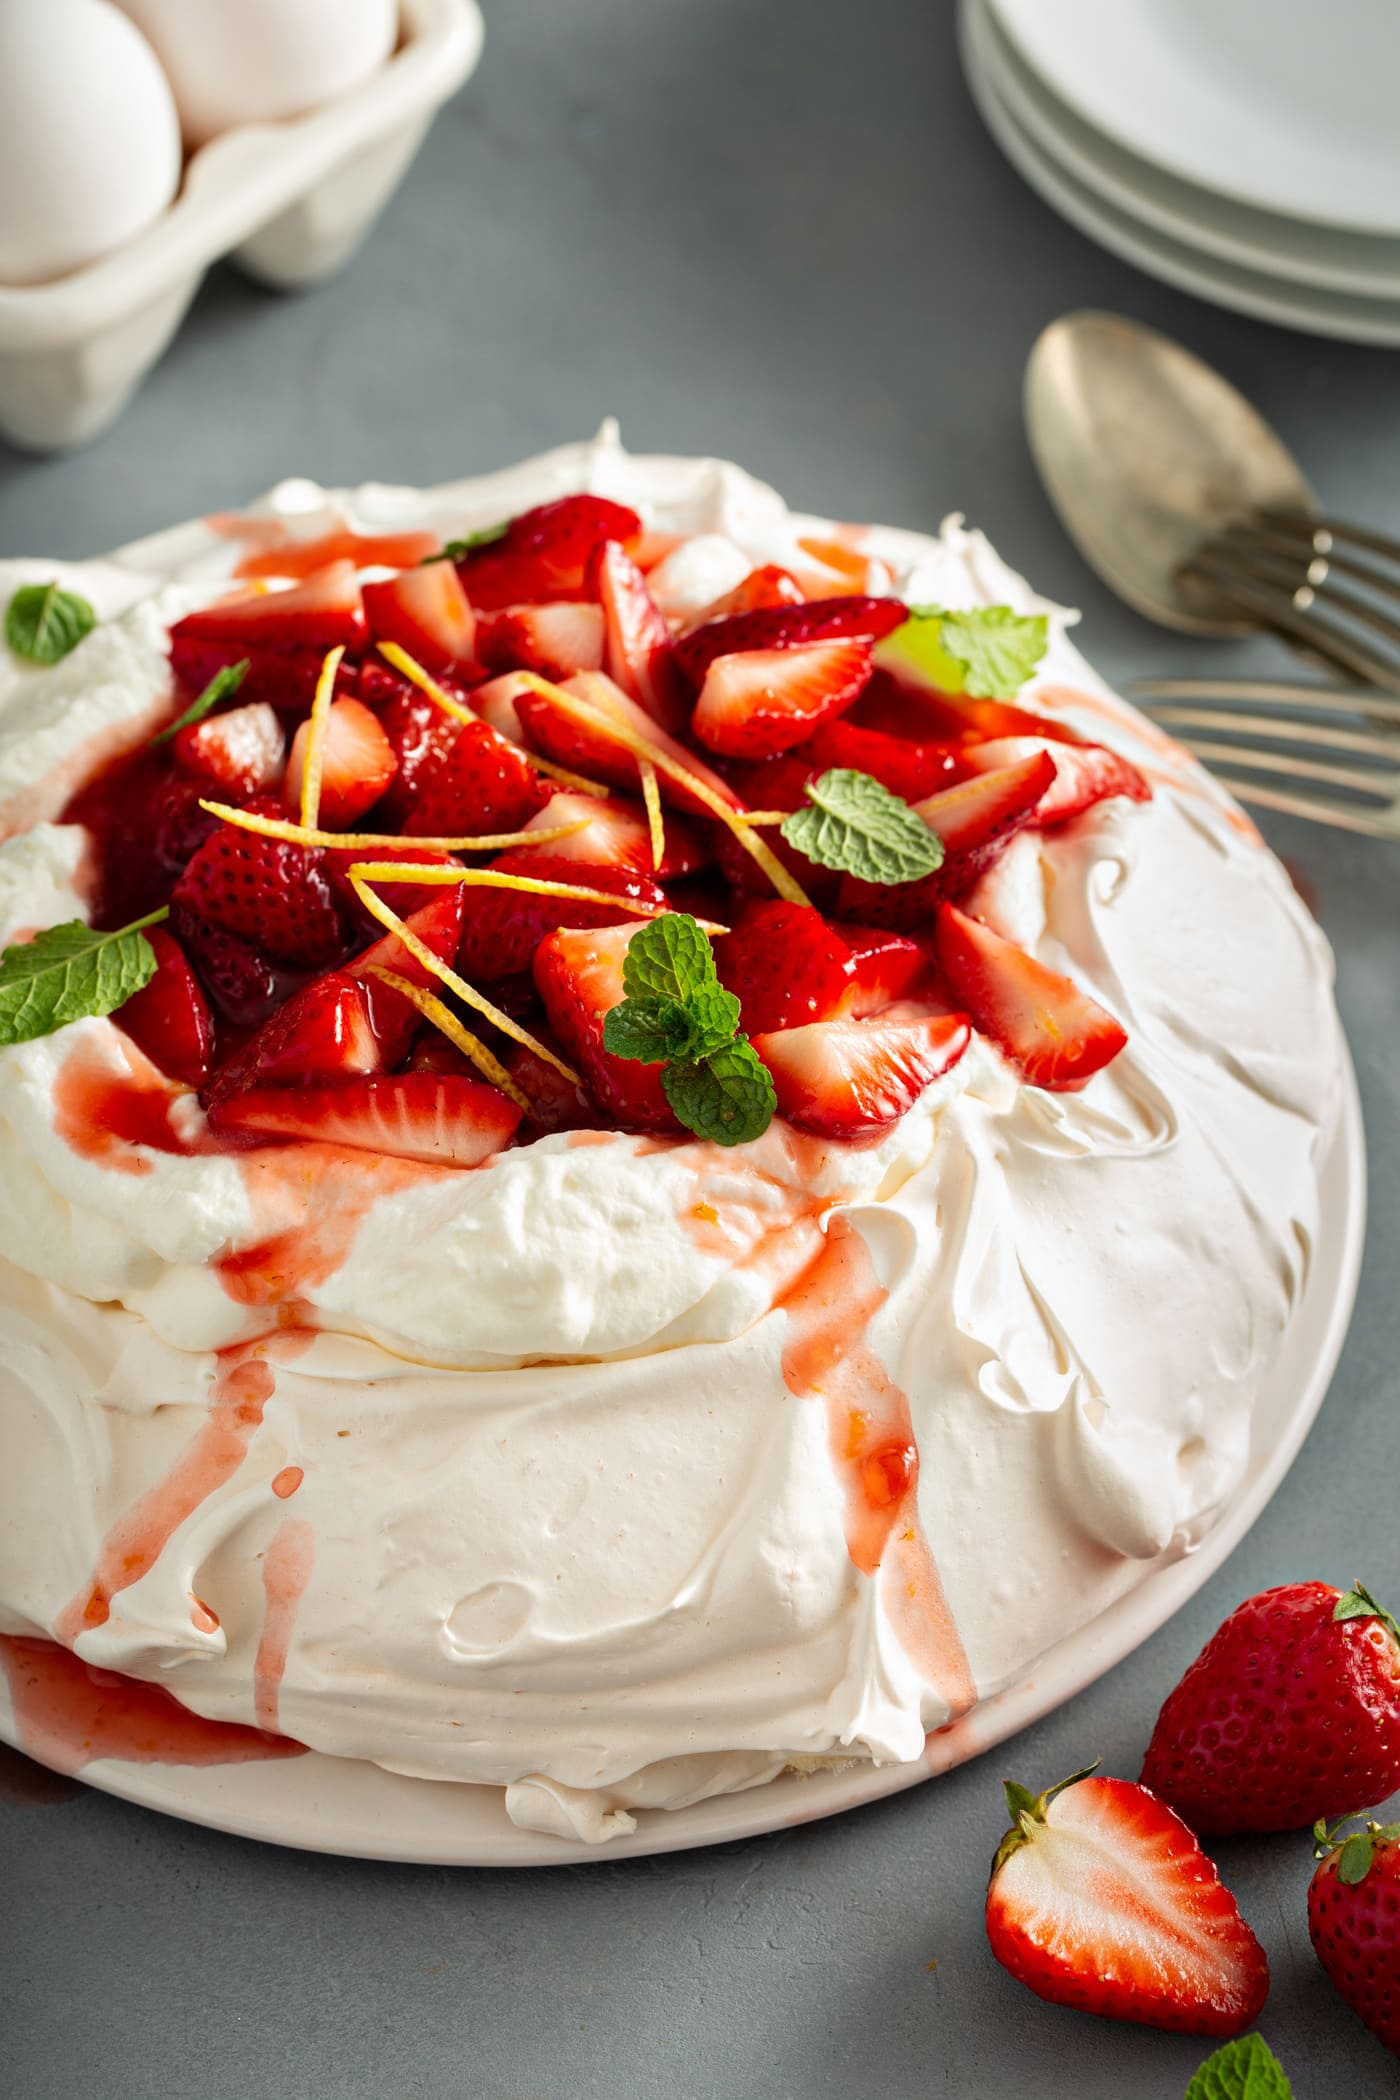 Pavlavo topped with whipped cream and sliced strawberries. A few strawberries and a spoon are on the table next to the pavlova.